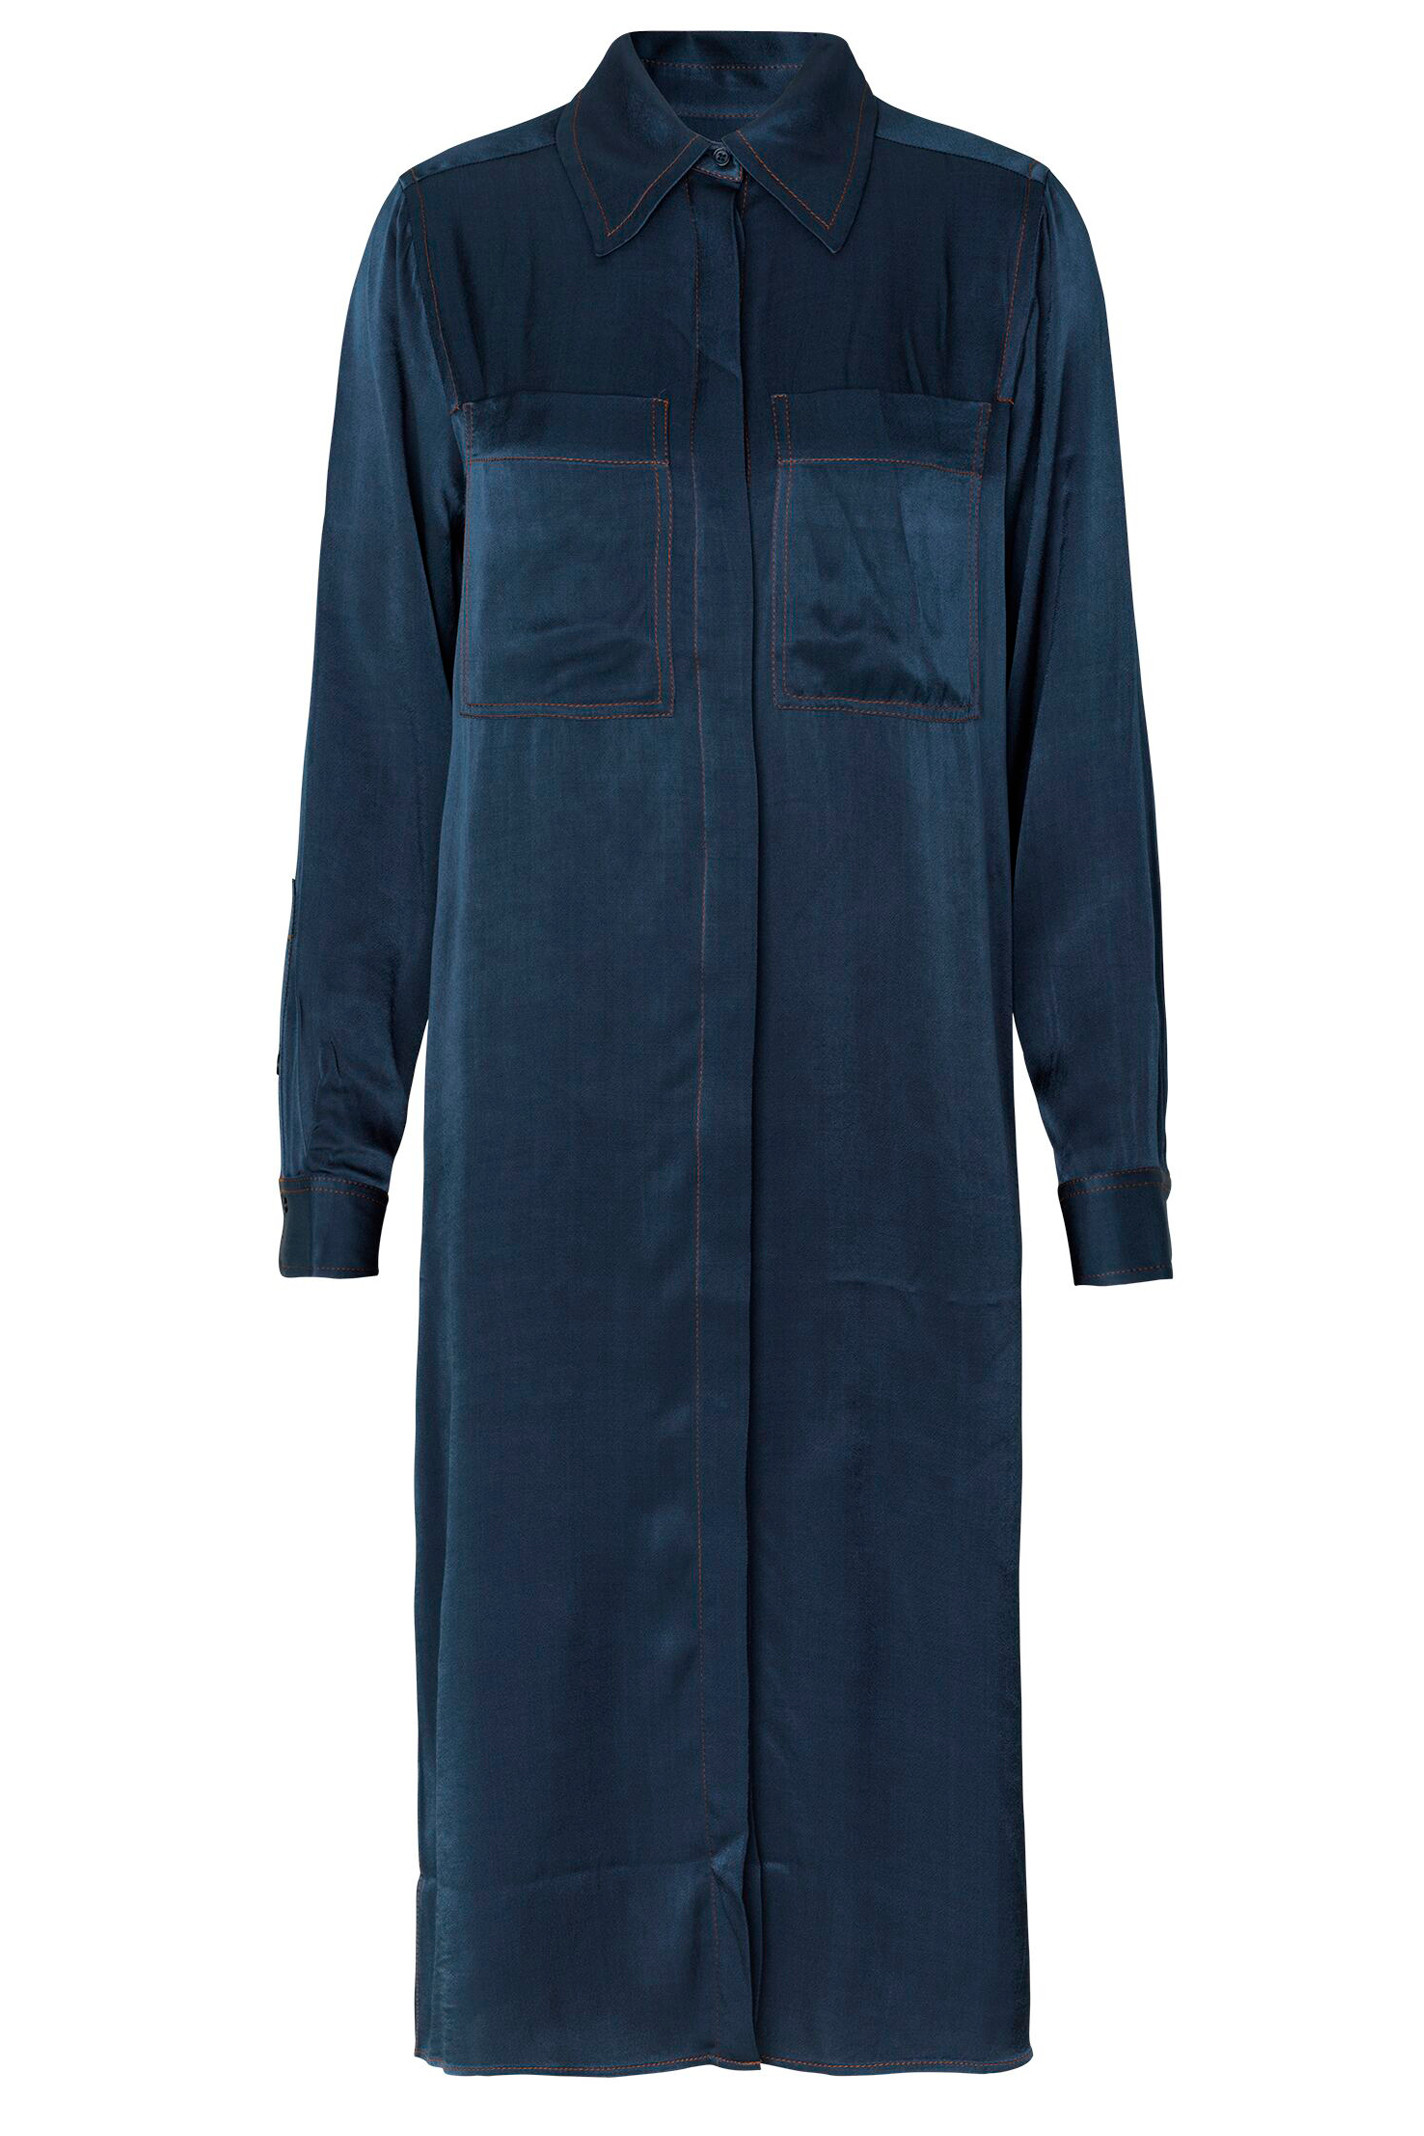 LEVETE ROOM FLORENCE 7 Navy